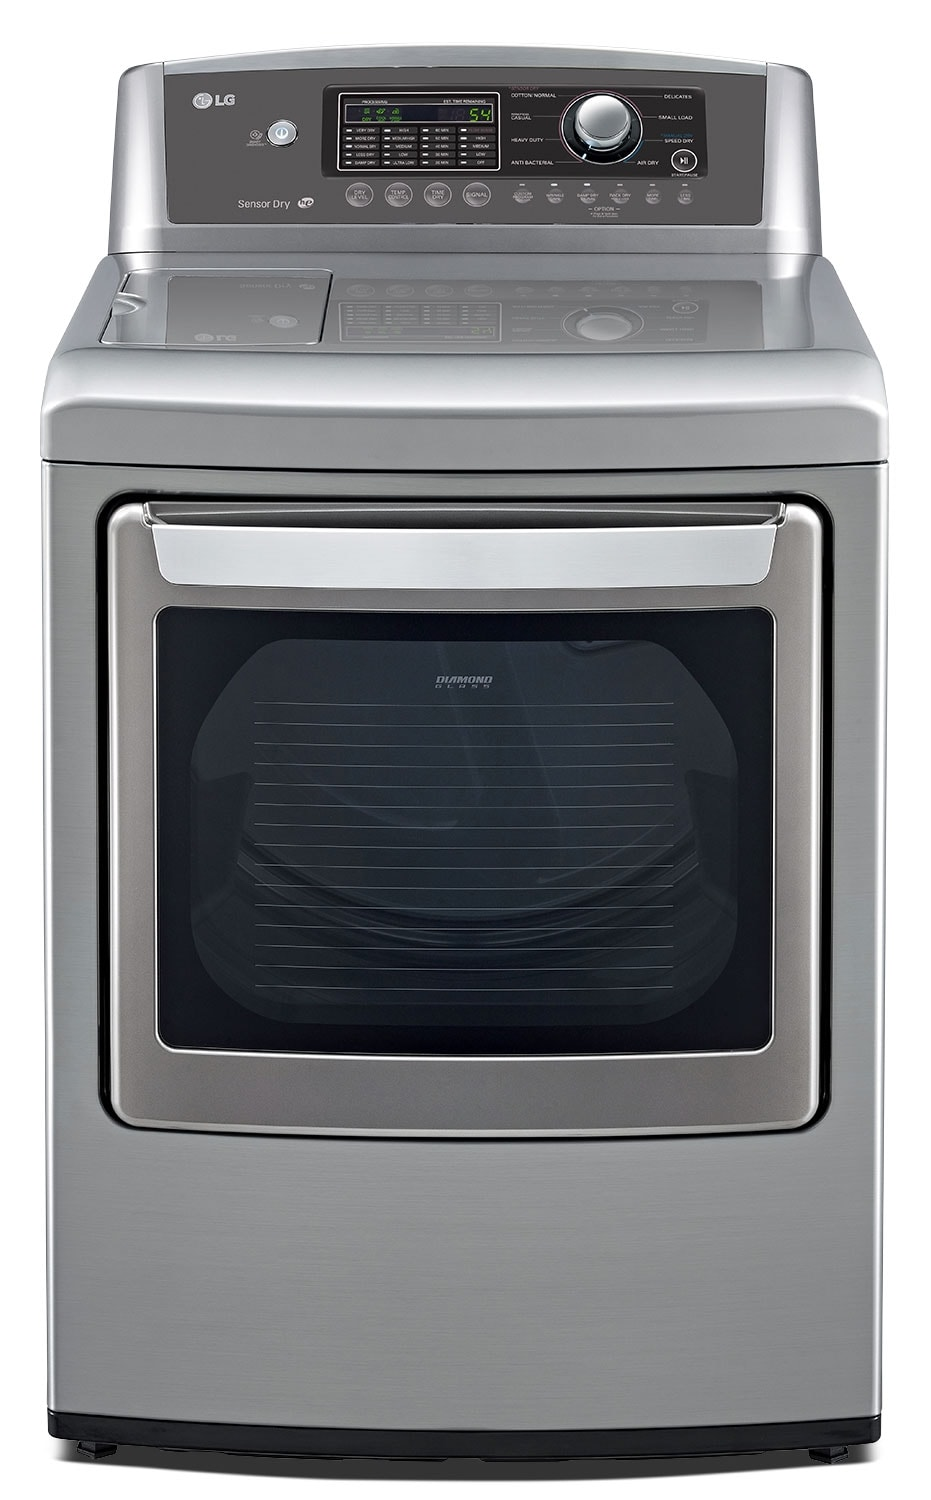 LG 7.3 Cu. Ft. Electric Dryer with Sensor Dry and SmartDiagnosis™ - Graphite Steel